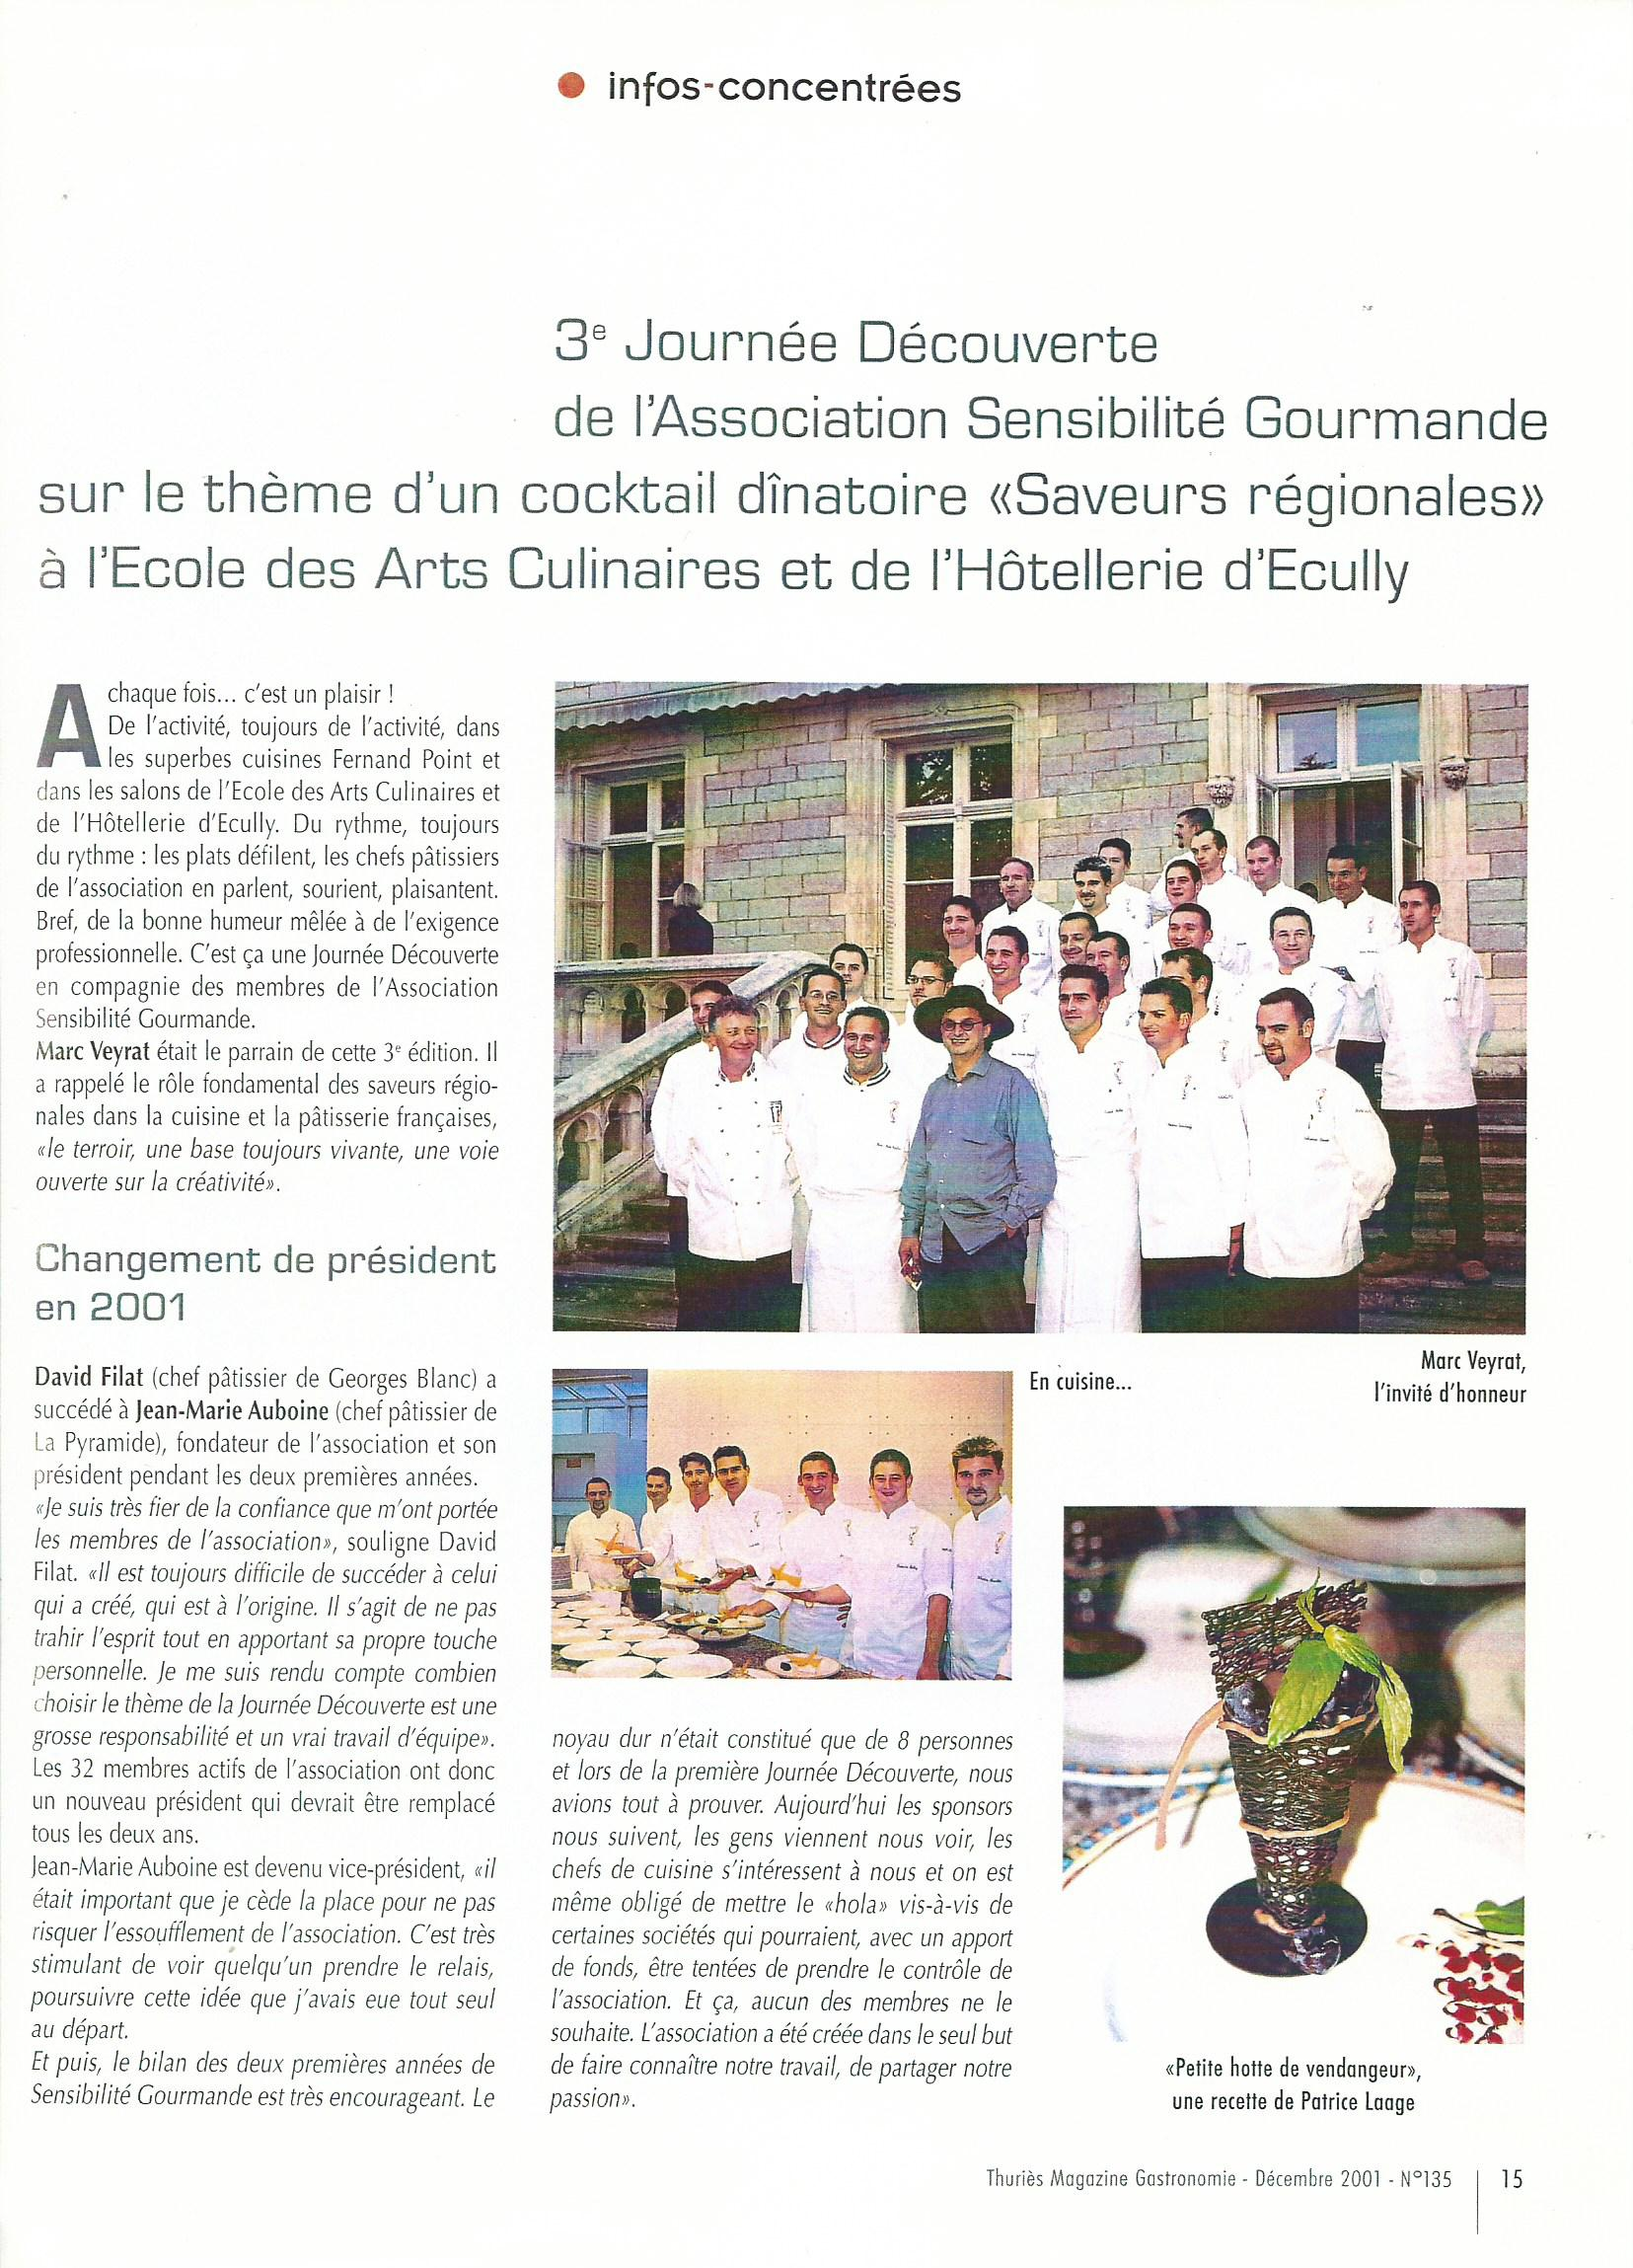 Thurries magazine decembre 2001.jpg